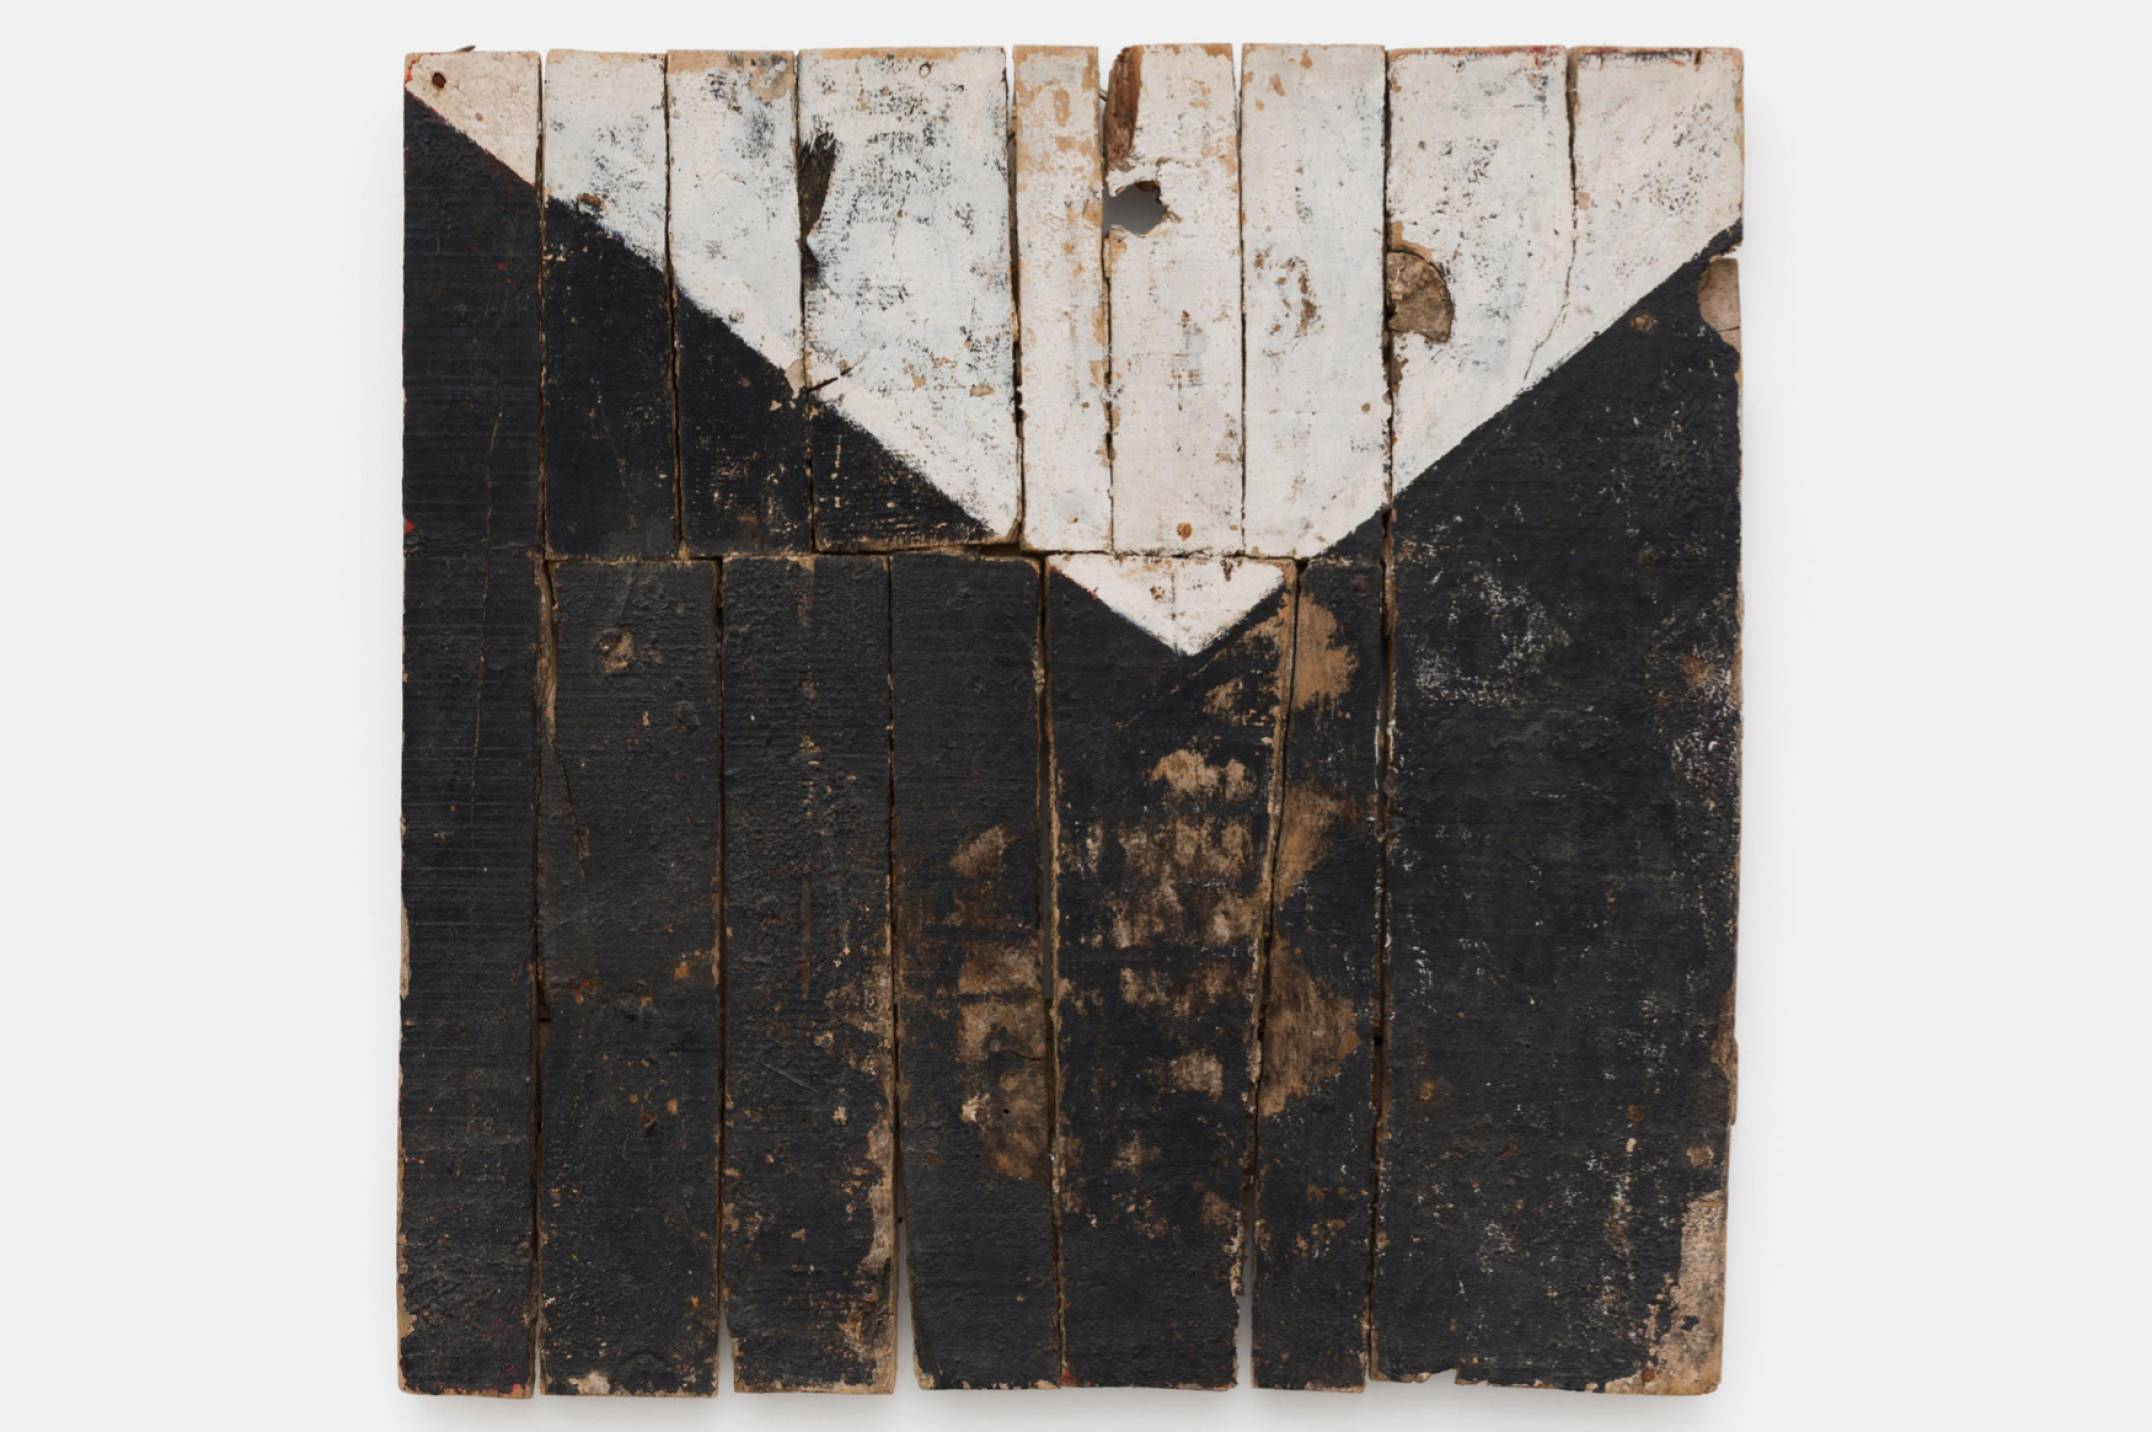 Celso Renato, <em>Untitled</em>, s/d, painting on wood, 80 × 80 cm - Mendes Wood DM